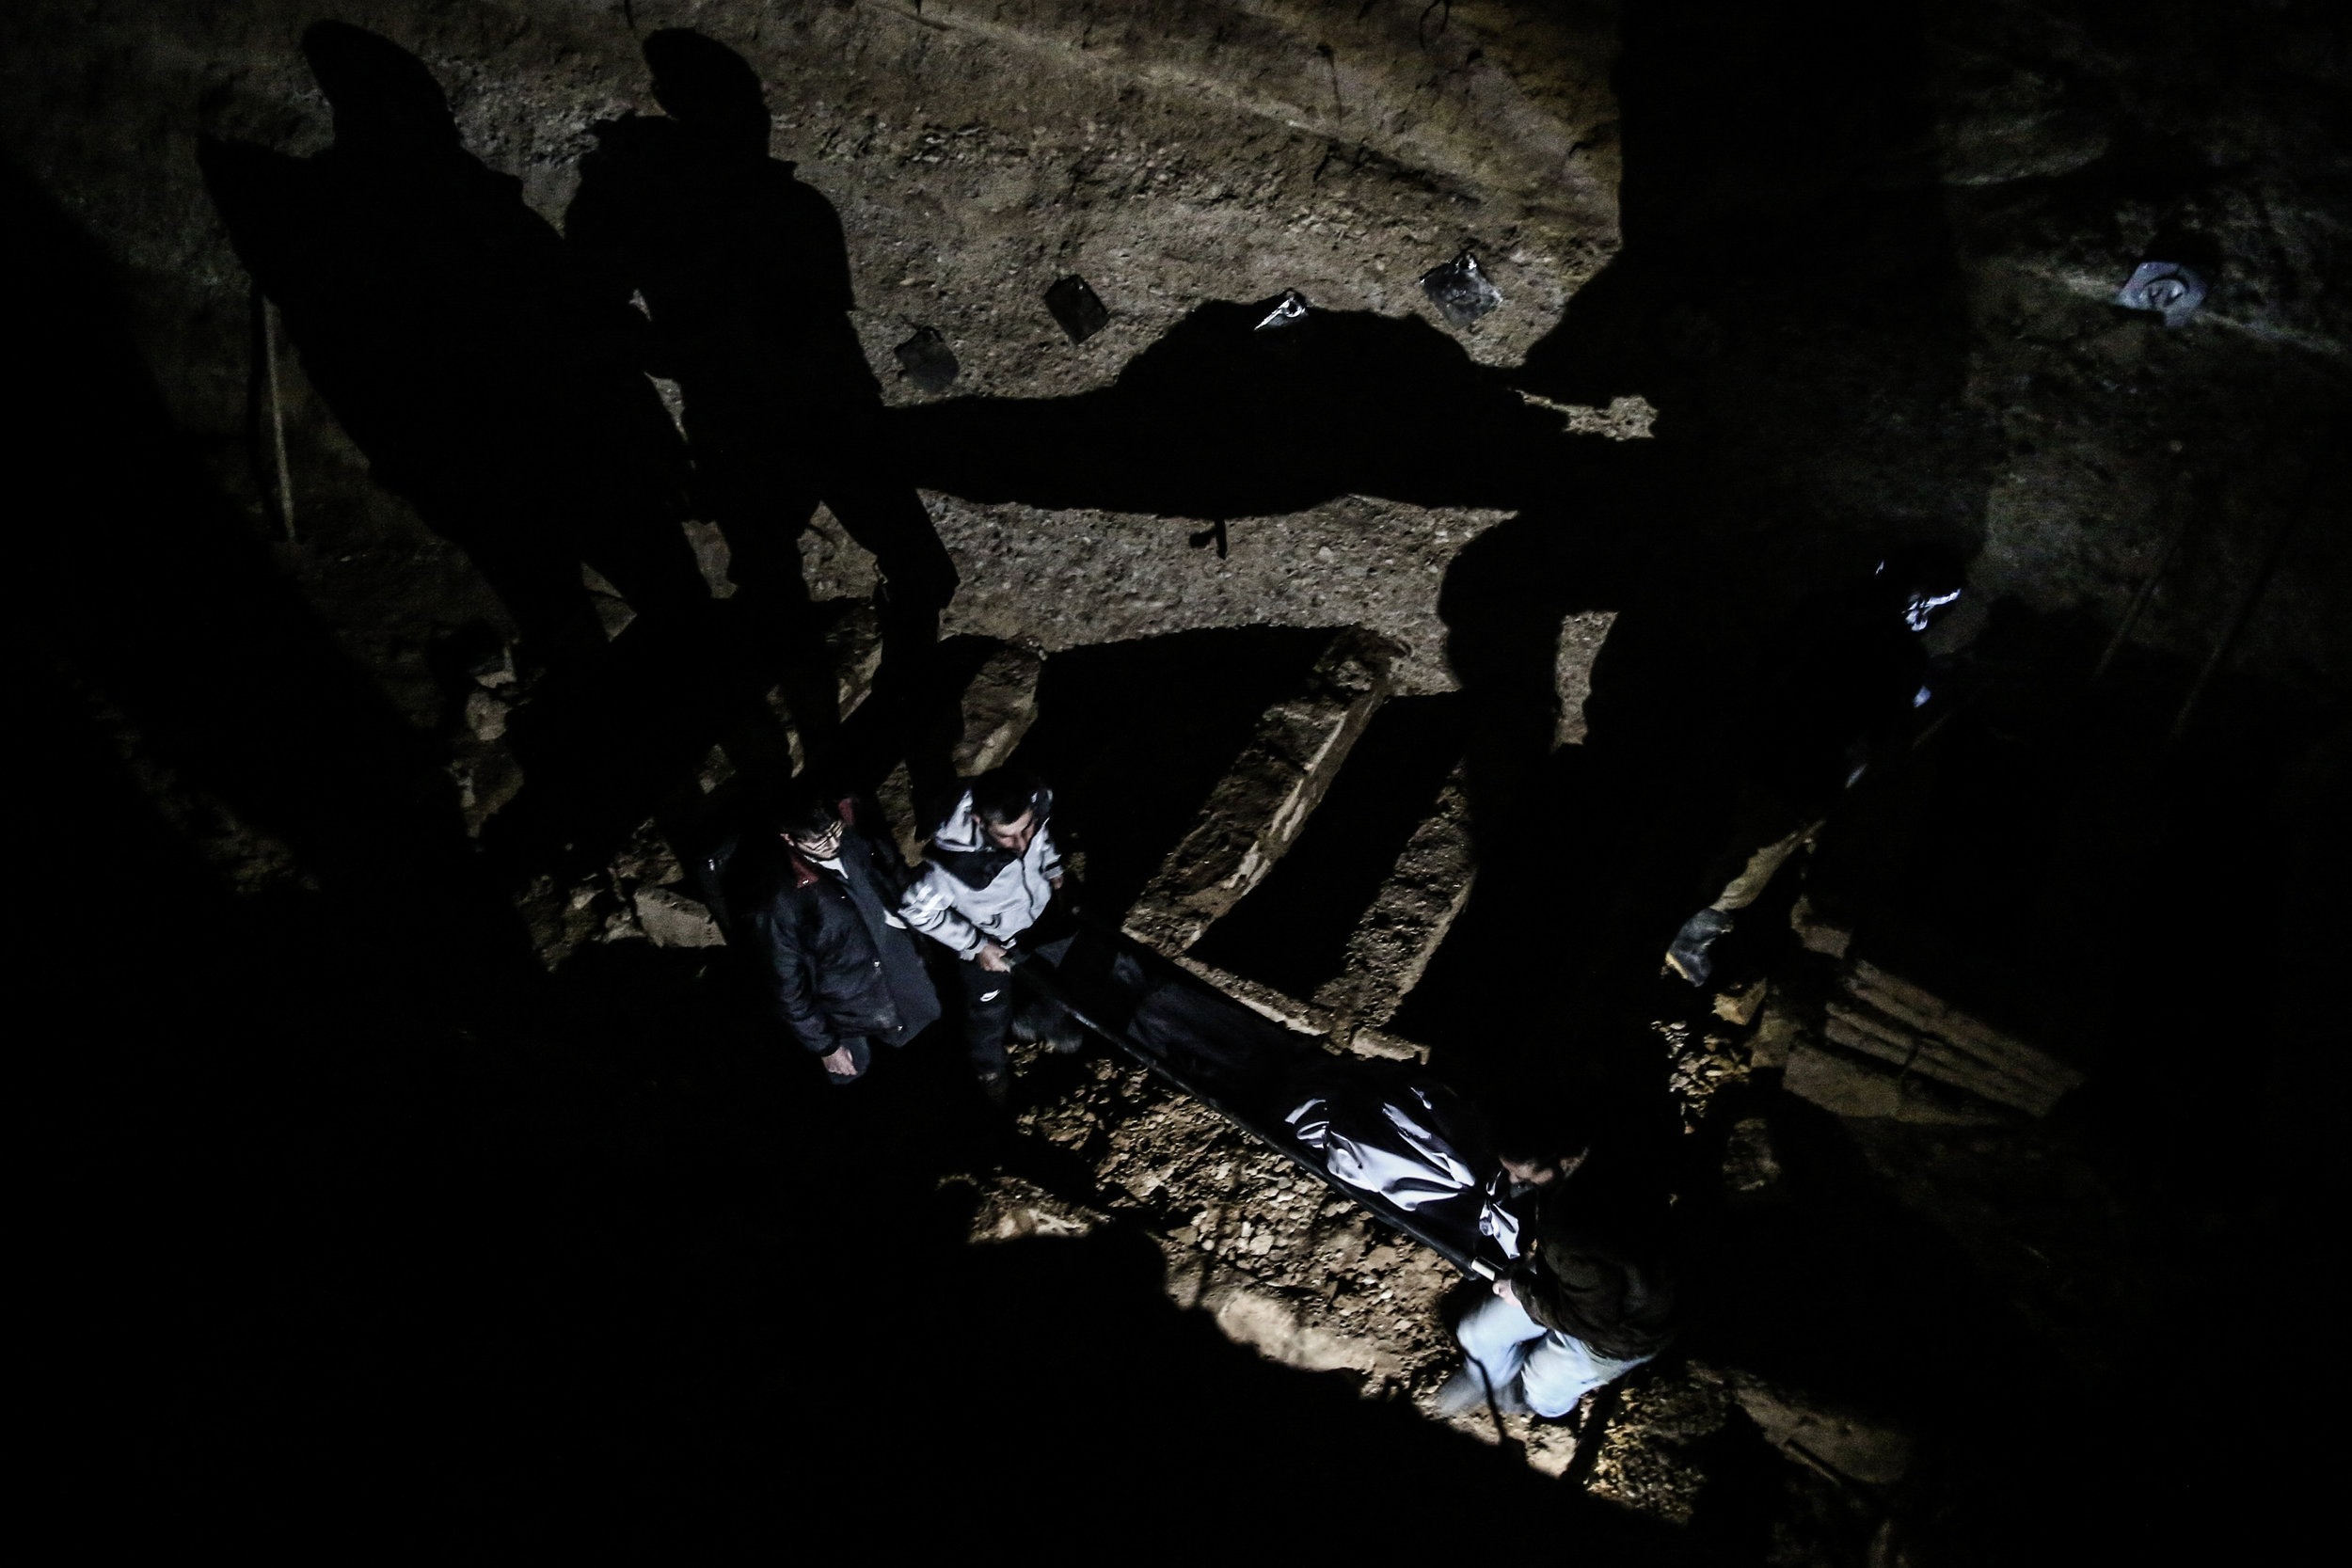 Men gather to bury the bodies of a family in the city of Douma. The family, made up of two boys, their mother and their grandmother, were killed during shelling by the Syrian government forces as they were having a picnic.